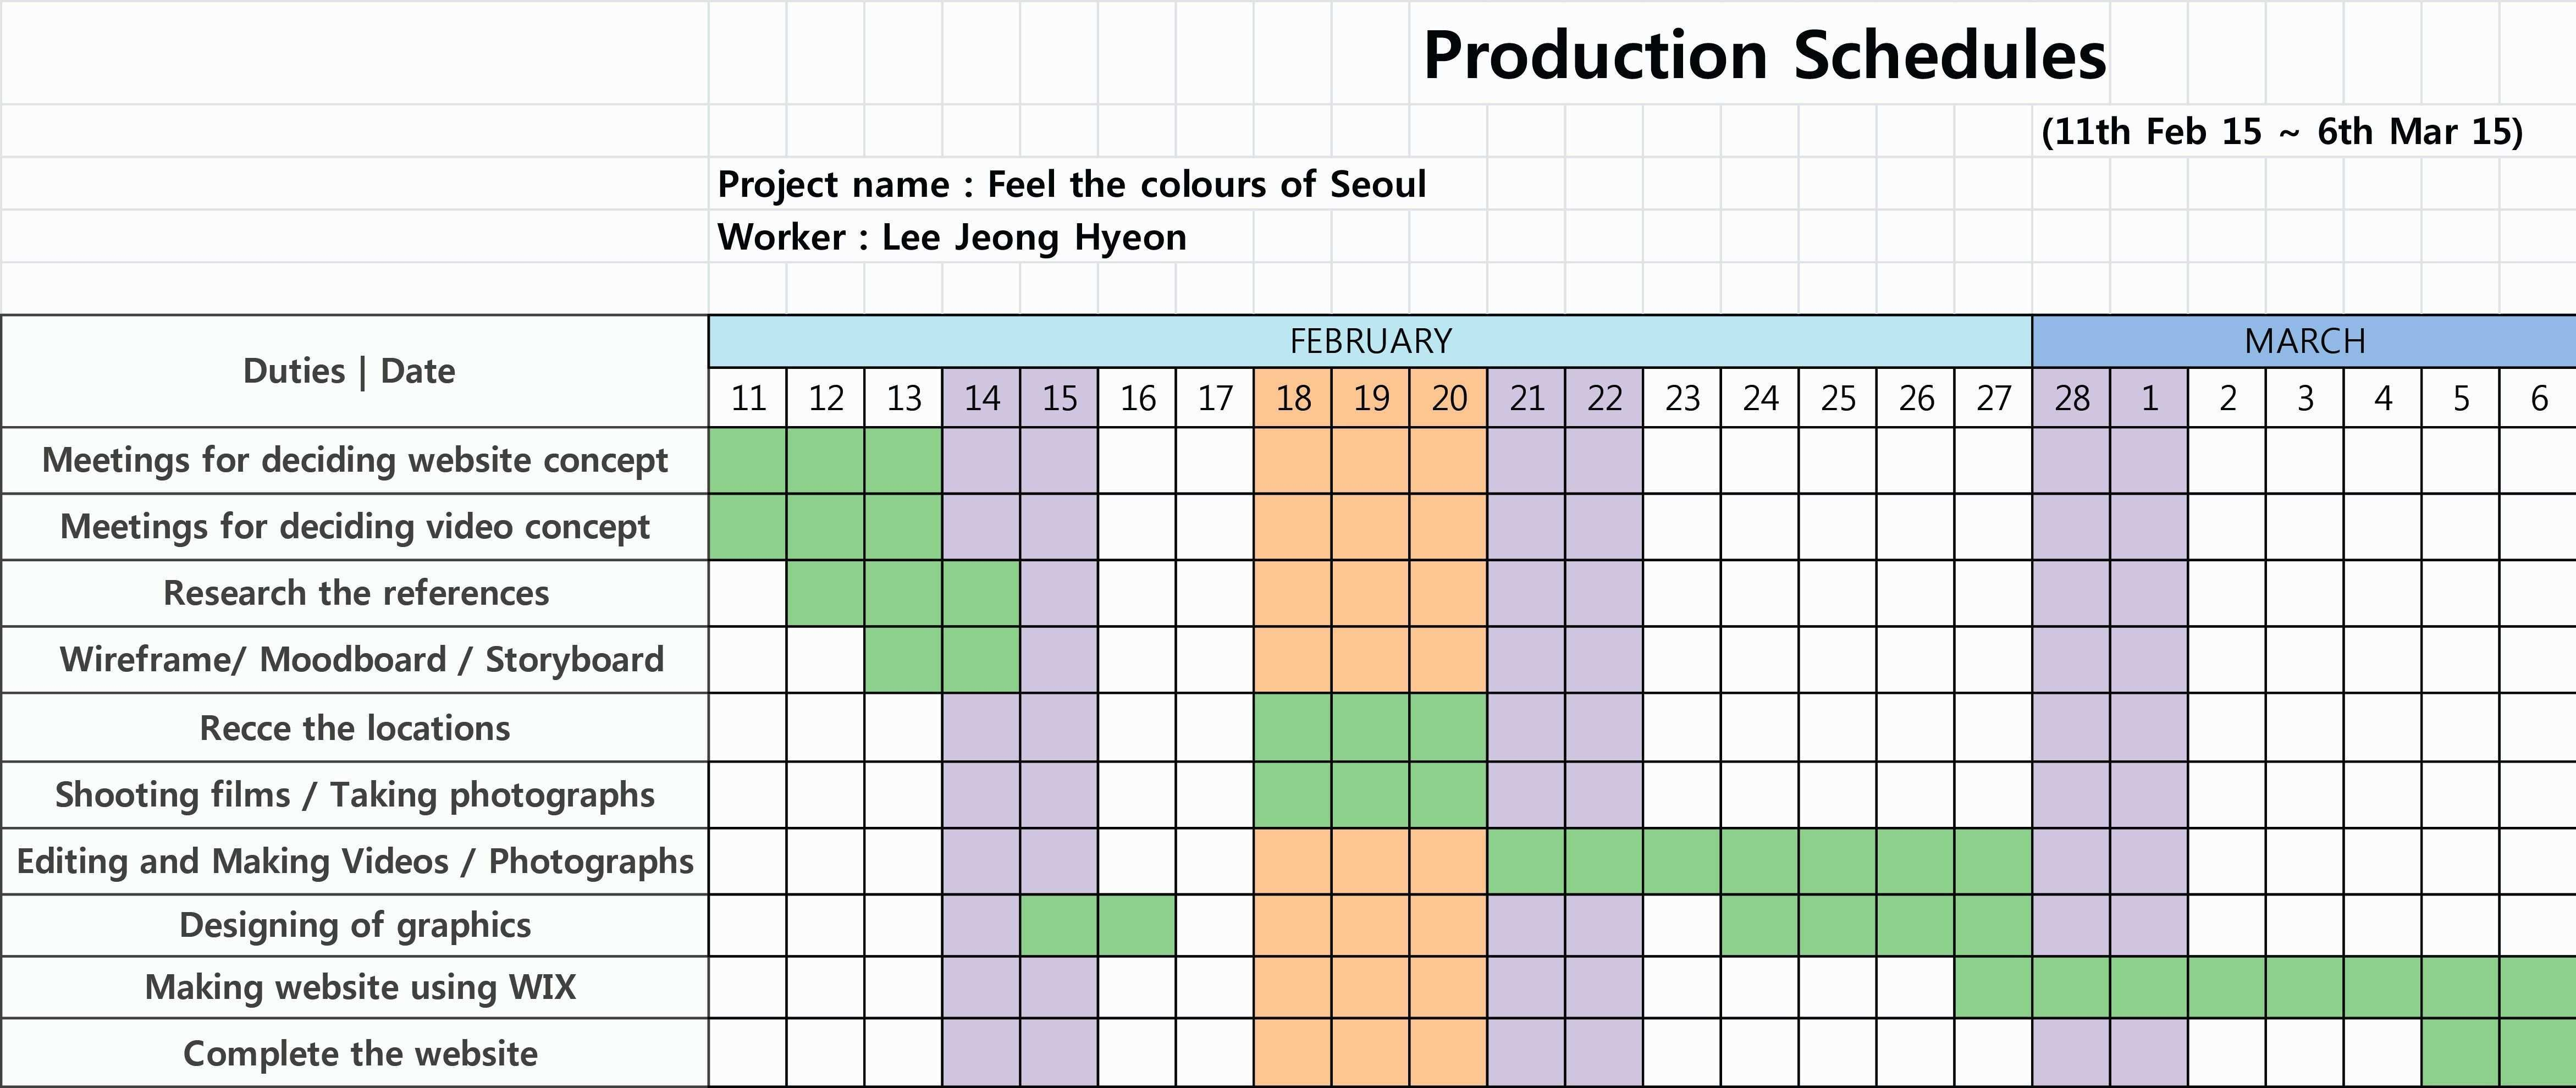 New Production Planning Chart In Excel Exceltemplate Xls Xlstemplate Xlsformat Excel Schedule Template Simple Cover Letter Template Free Brochure Template